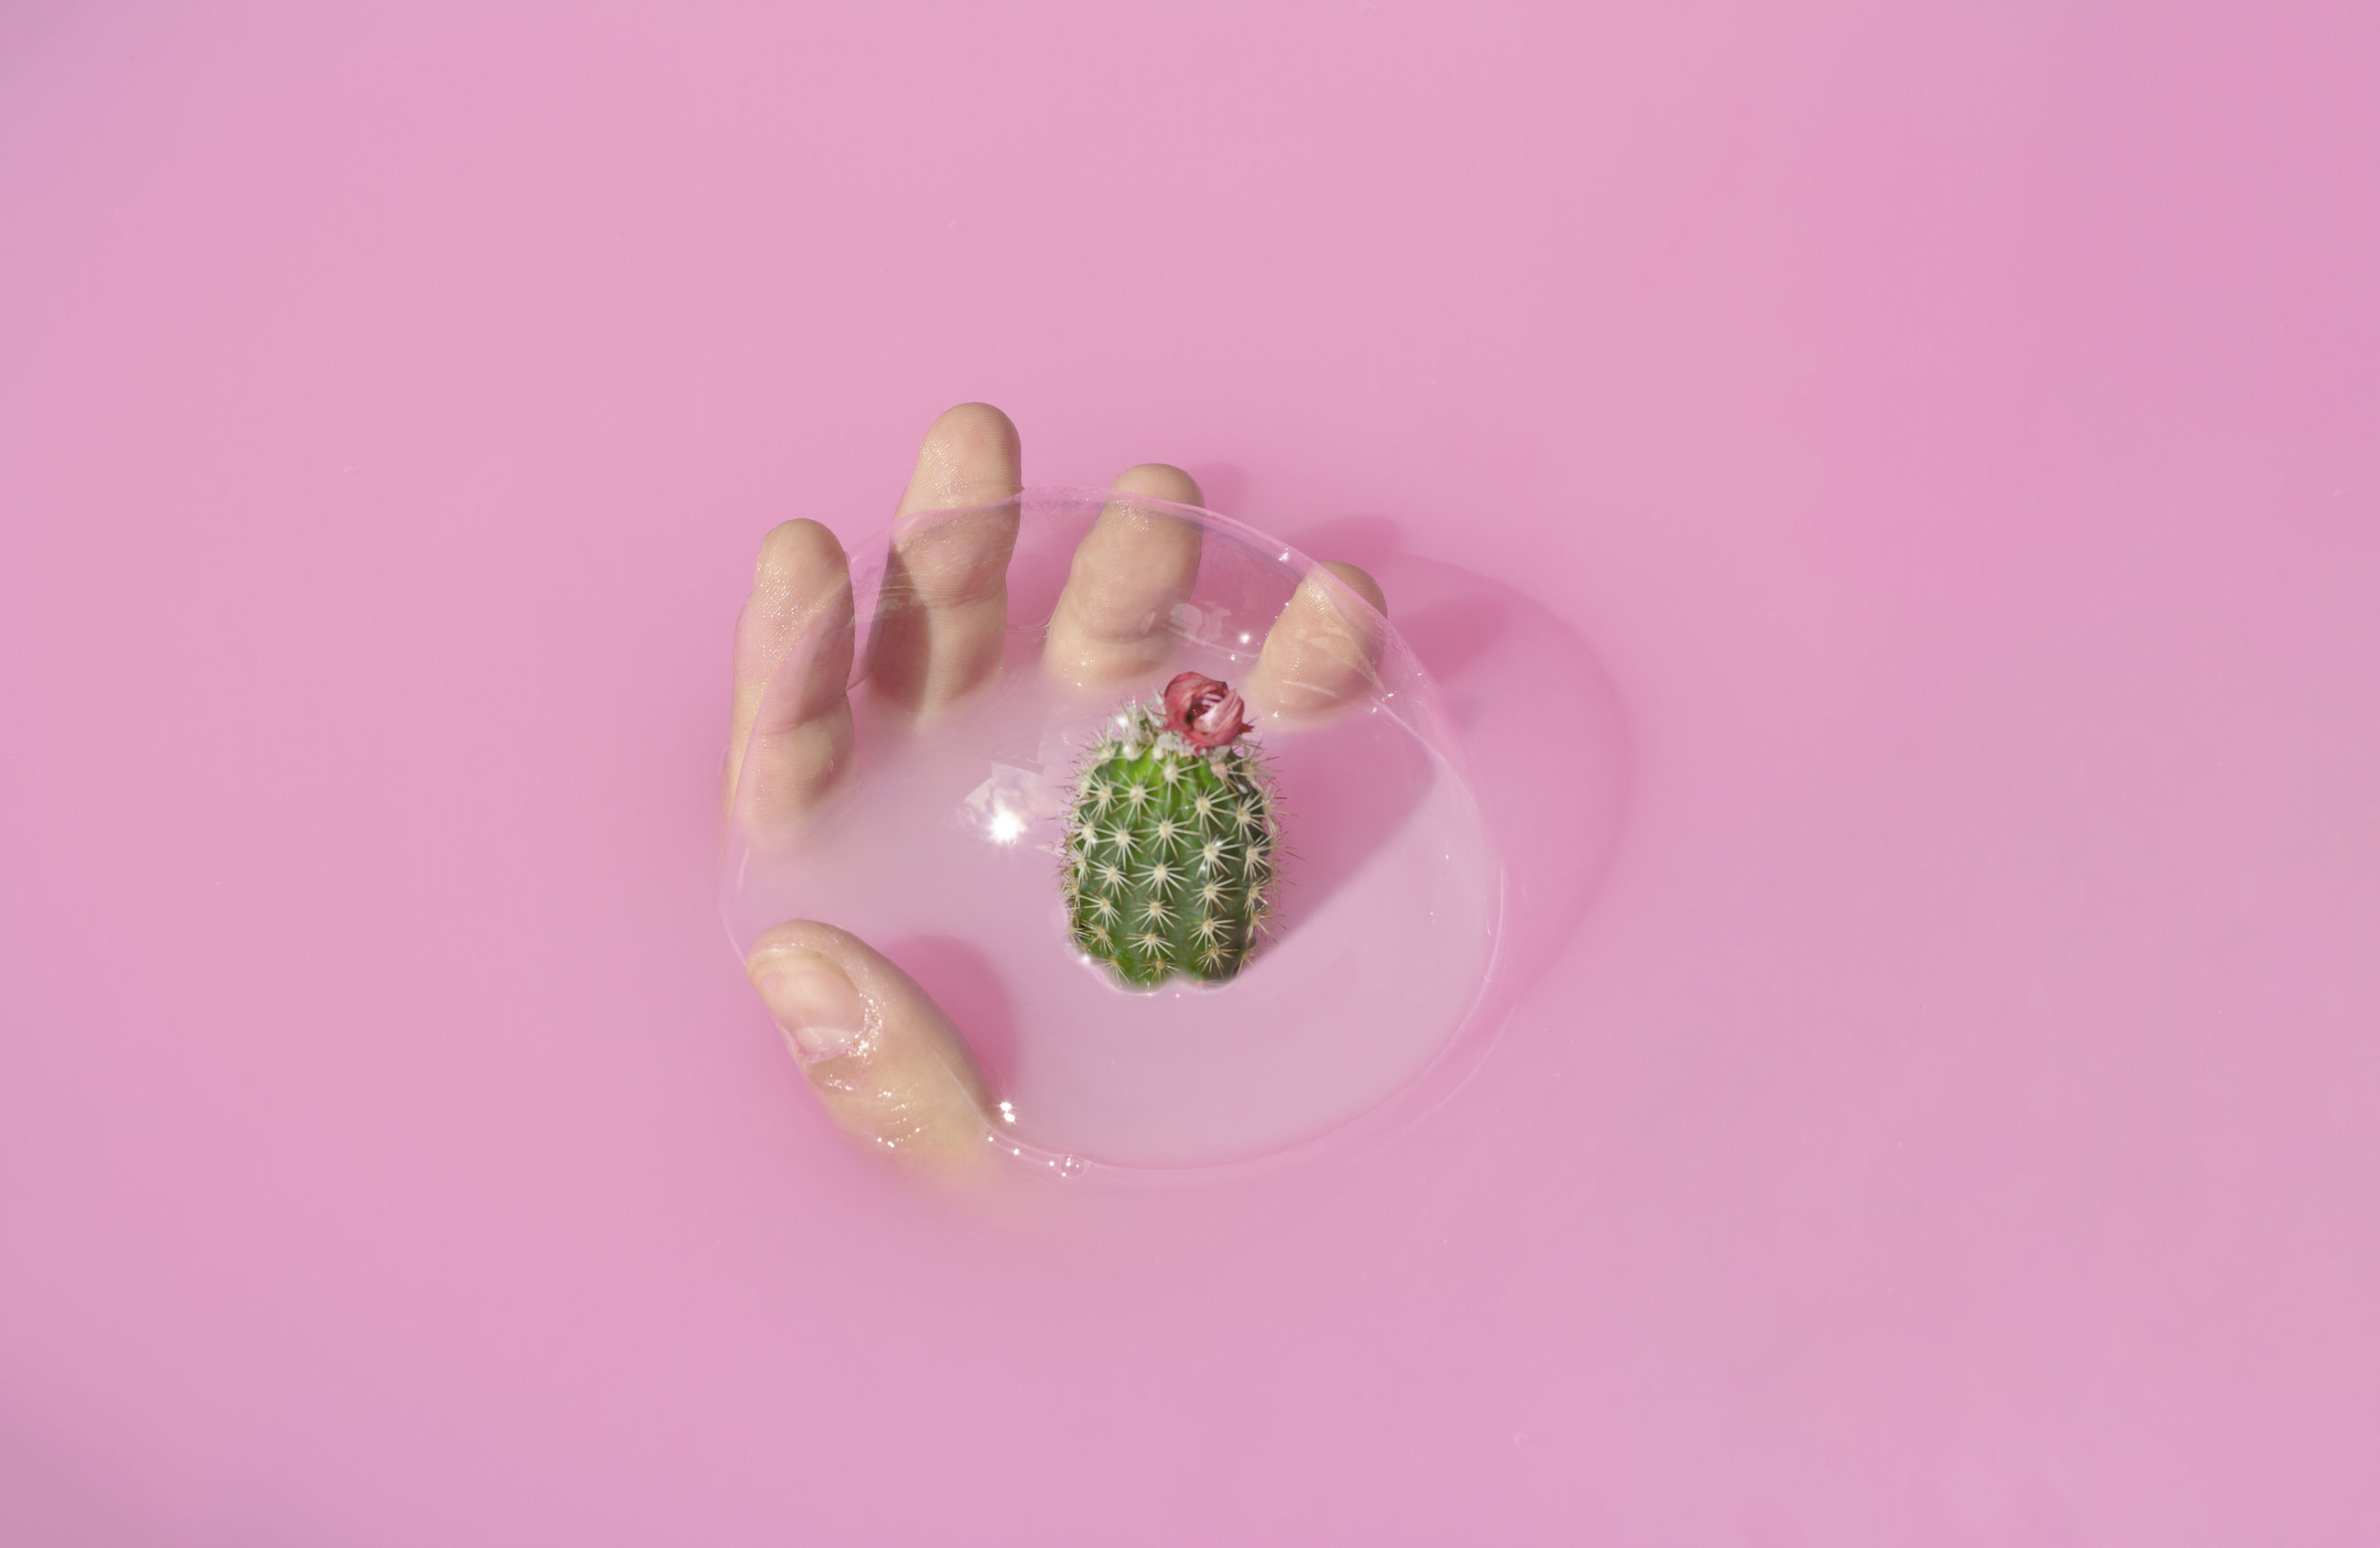 studio shot, food and drink, food, pink color, human hand, colored background, indoors, wellbeing, healthy eating, pink background, one person, vegetable, copy space, freshness, human body part, hand, close-up, holding, still life, body part, finger, temptation